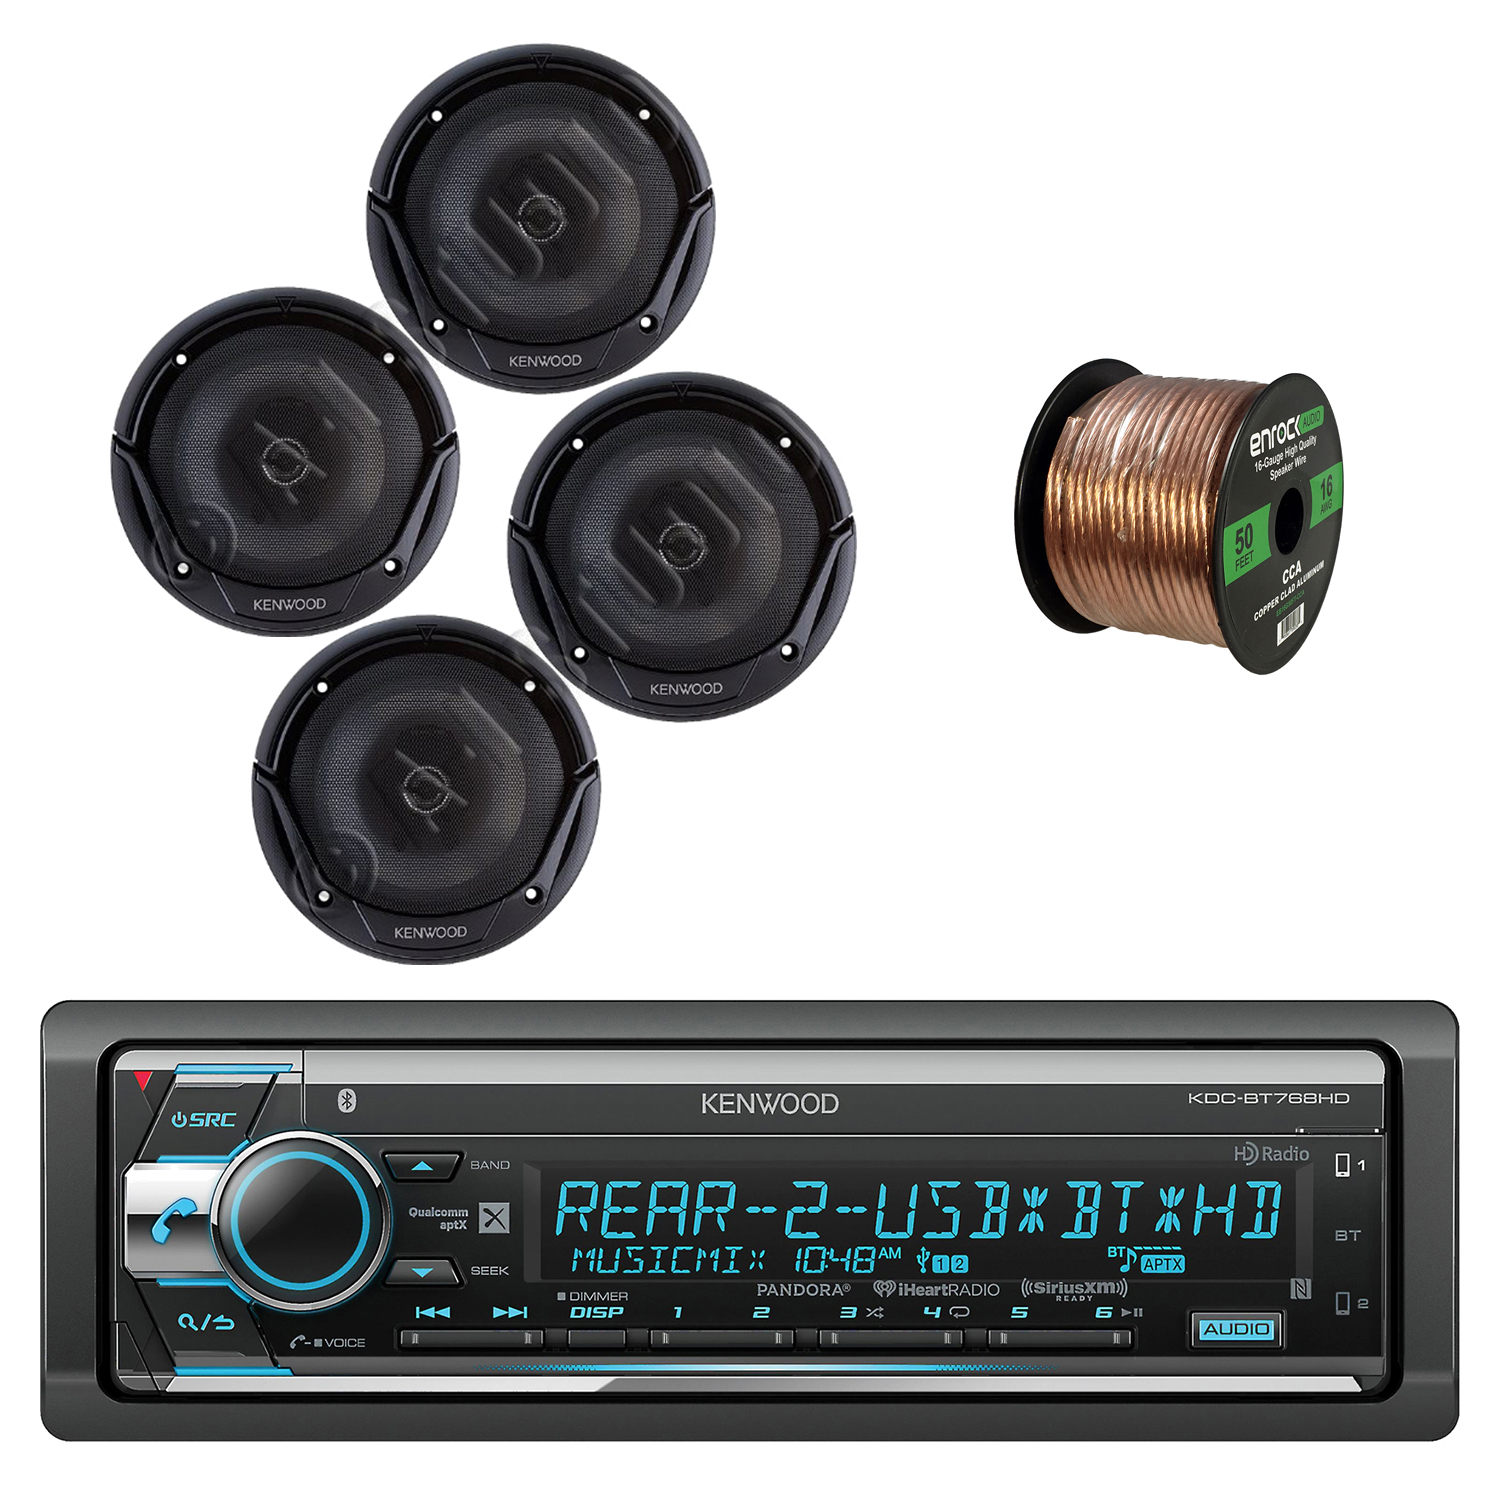 Kenwood Single Din CD/AM/FM Car Audio Receiver with Bluetooth with Kenwood Sport Series 6.5 Inch 2-Way Flush Mount Coaxial Car Speakers 2-pairs and Enrock Audio 16-Gauge 50 Foot Speaker Wire Cable